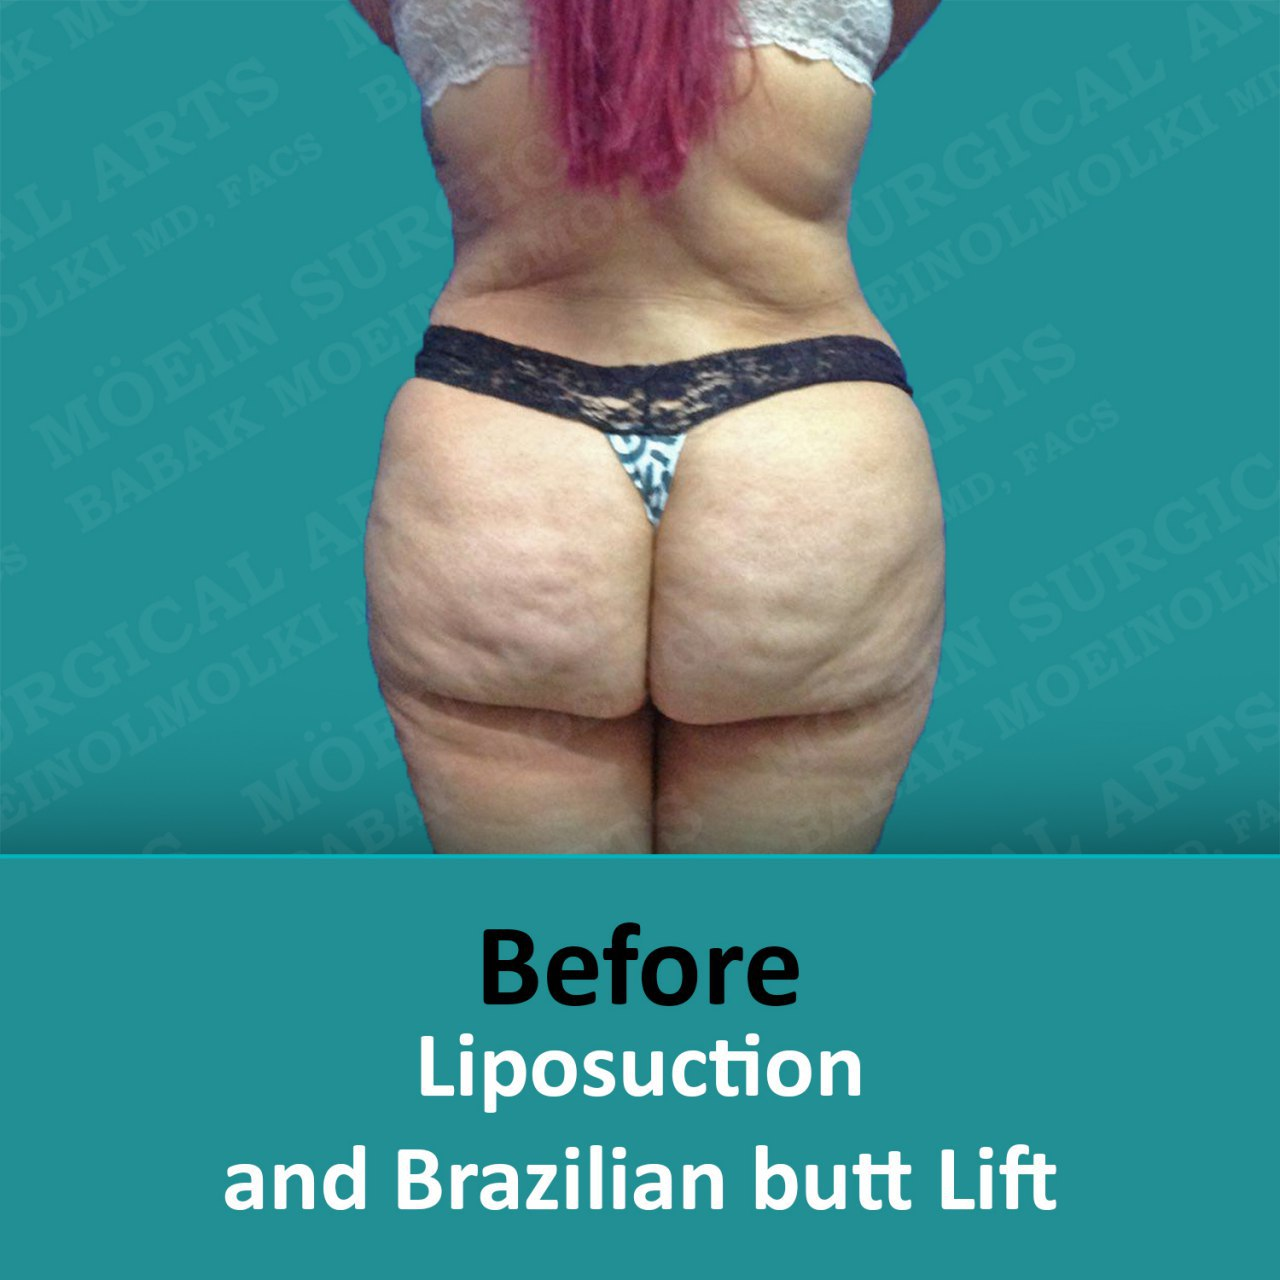 Liposuction and Brazilian butt lift before